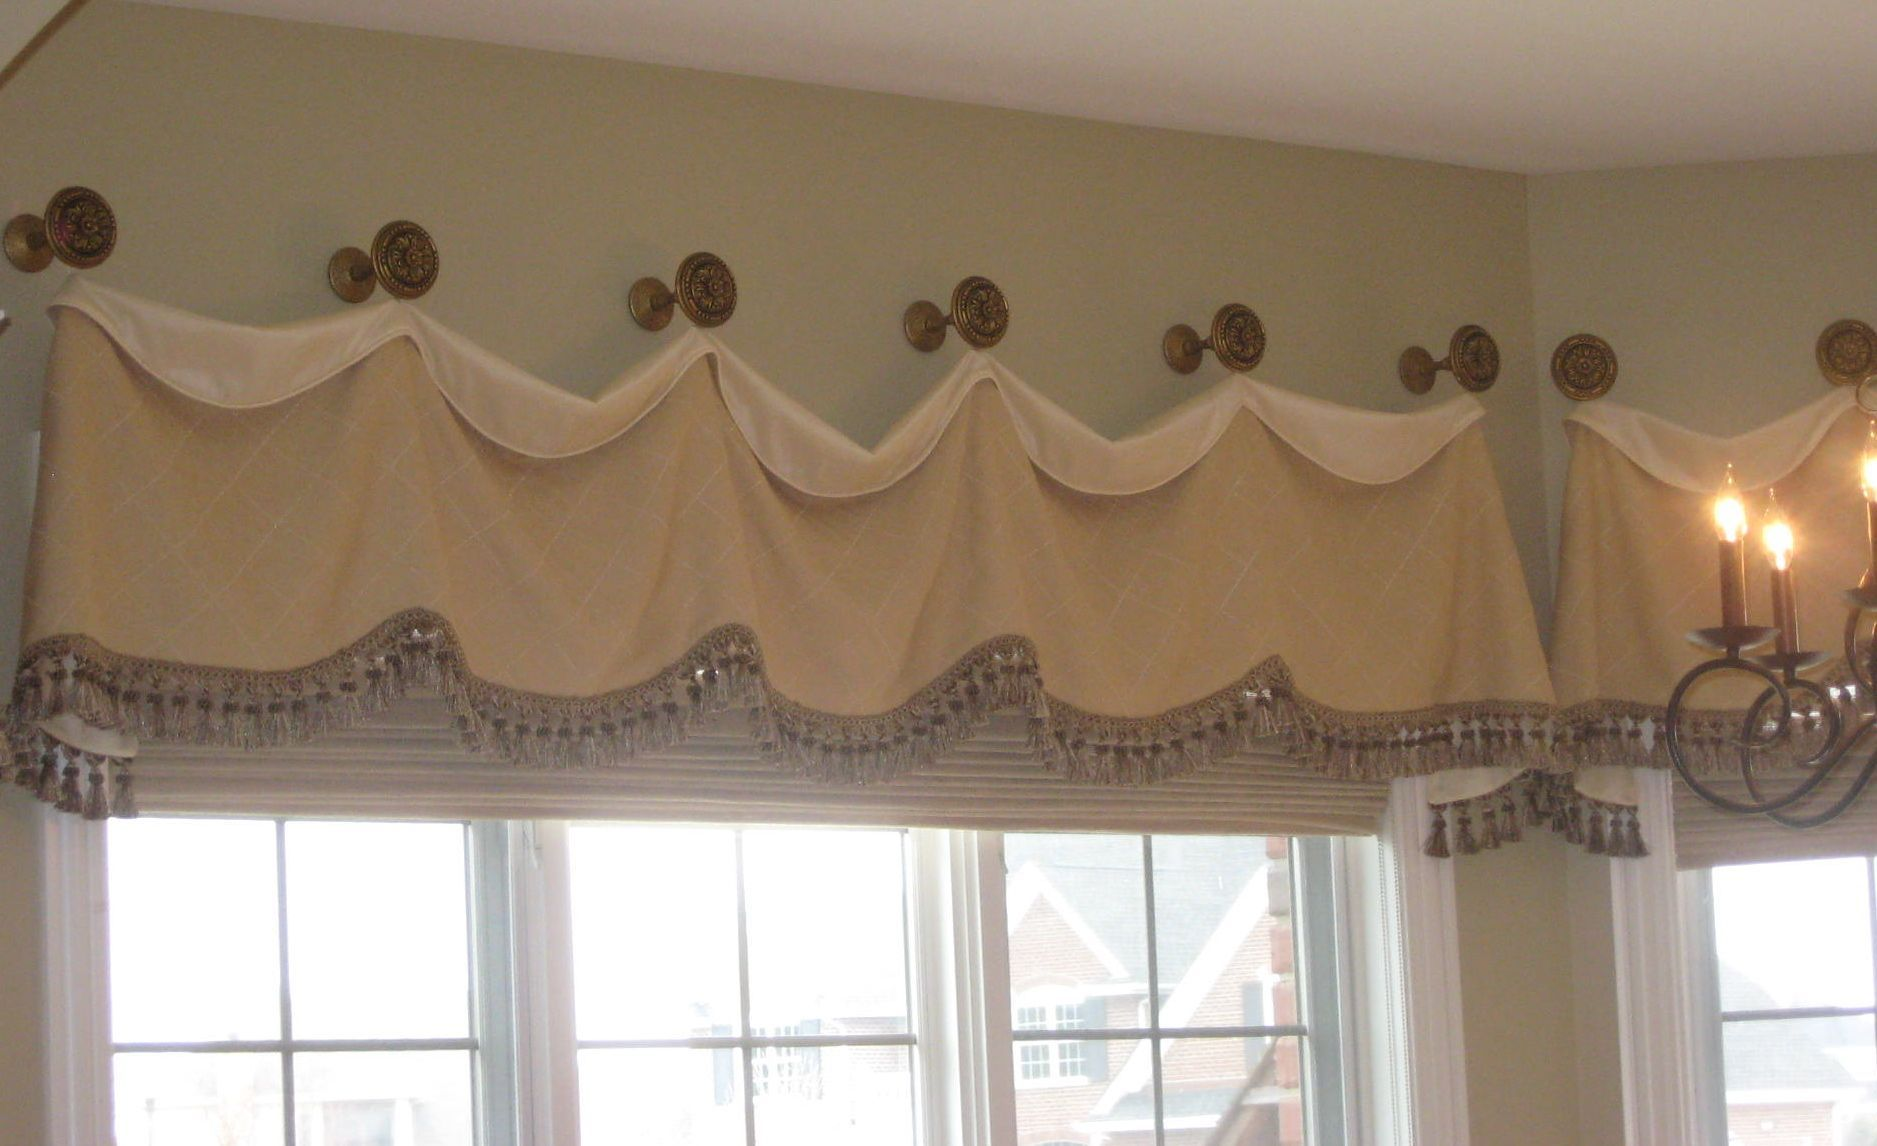 Dinette valance on medallions with natural romans shades